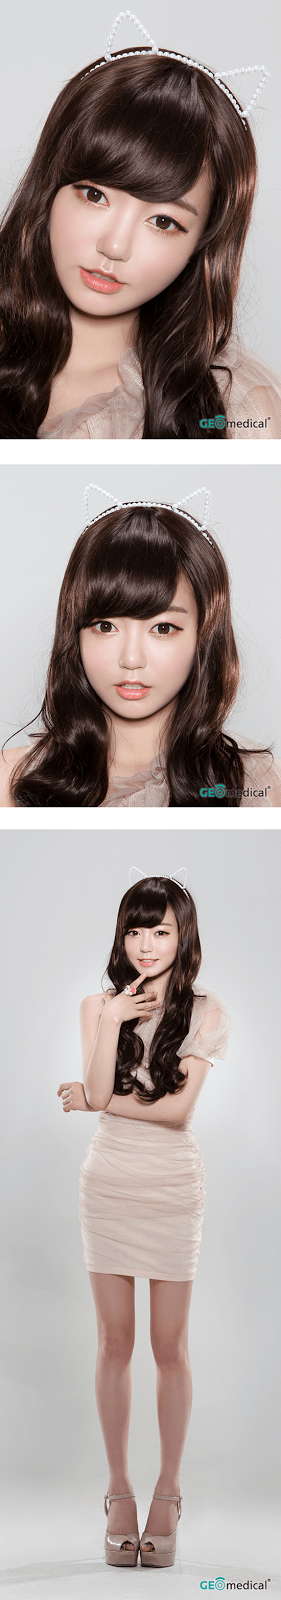 Geo HoliCat Lovely Cat Choco Circle Lenses (Colored Contacts)